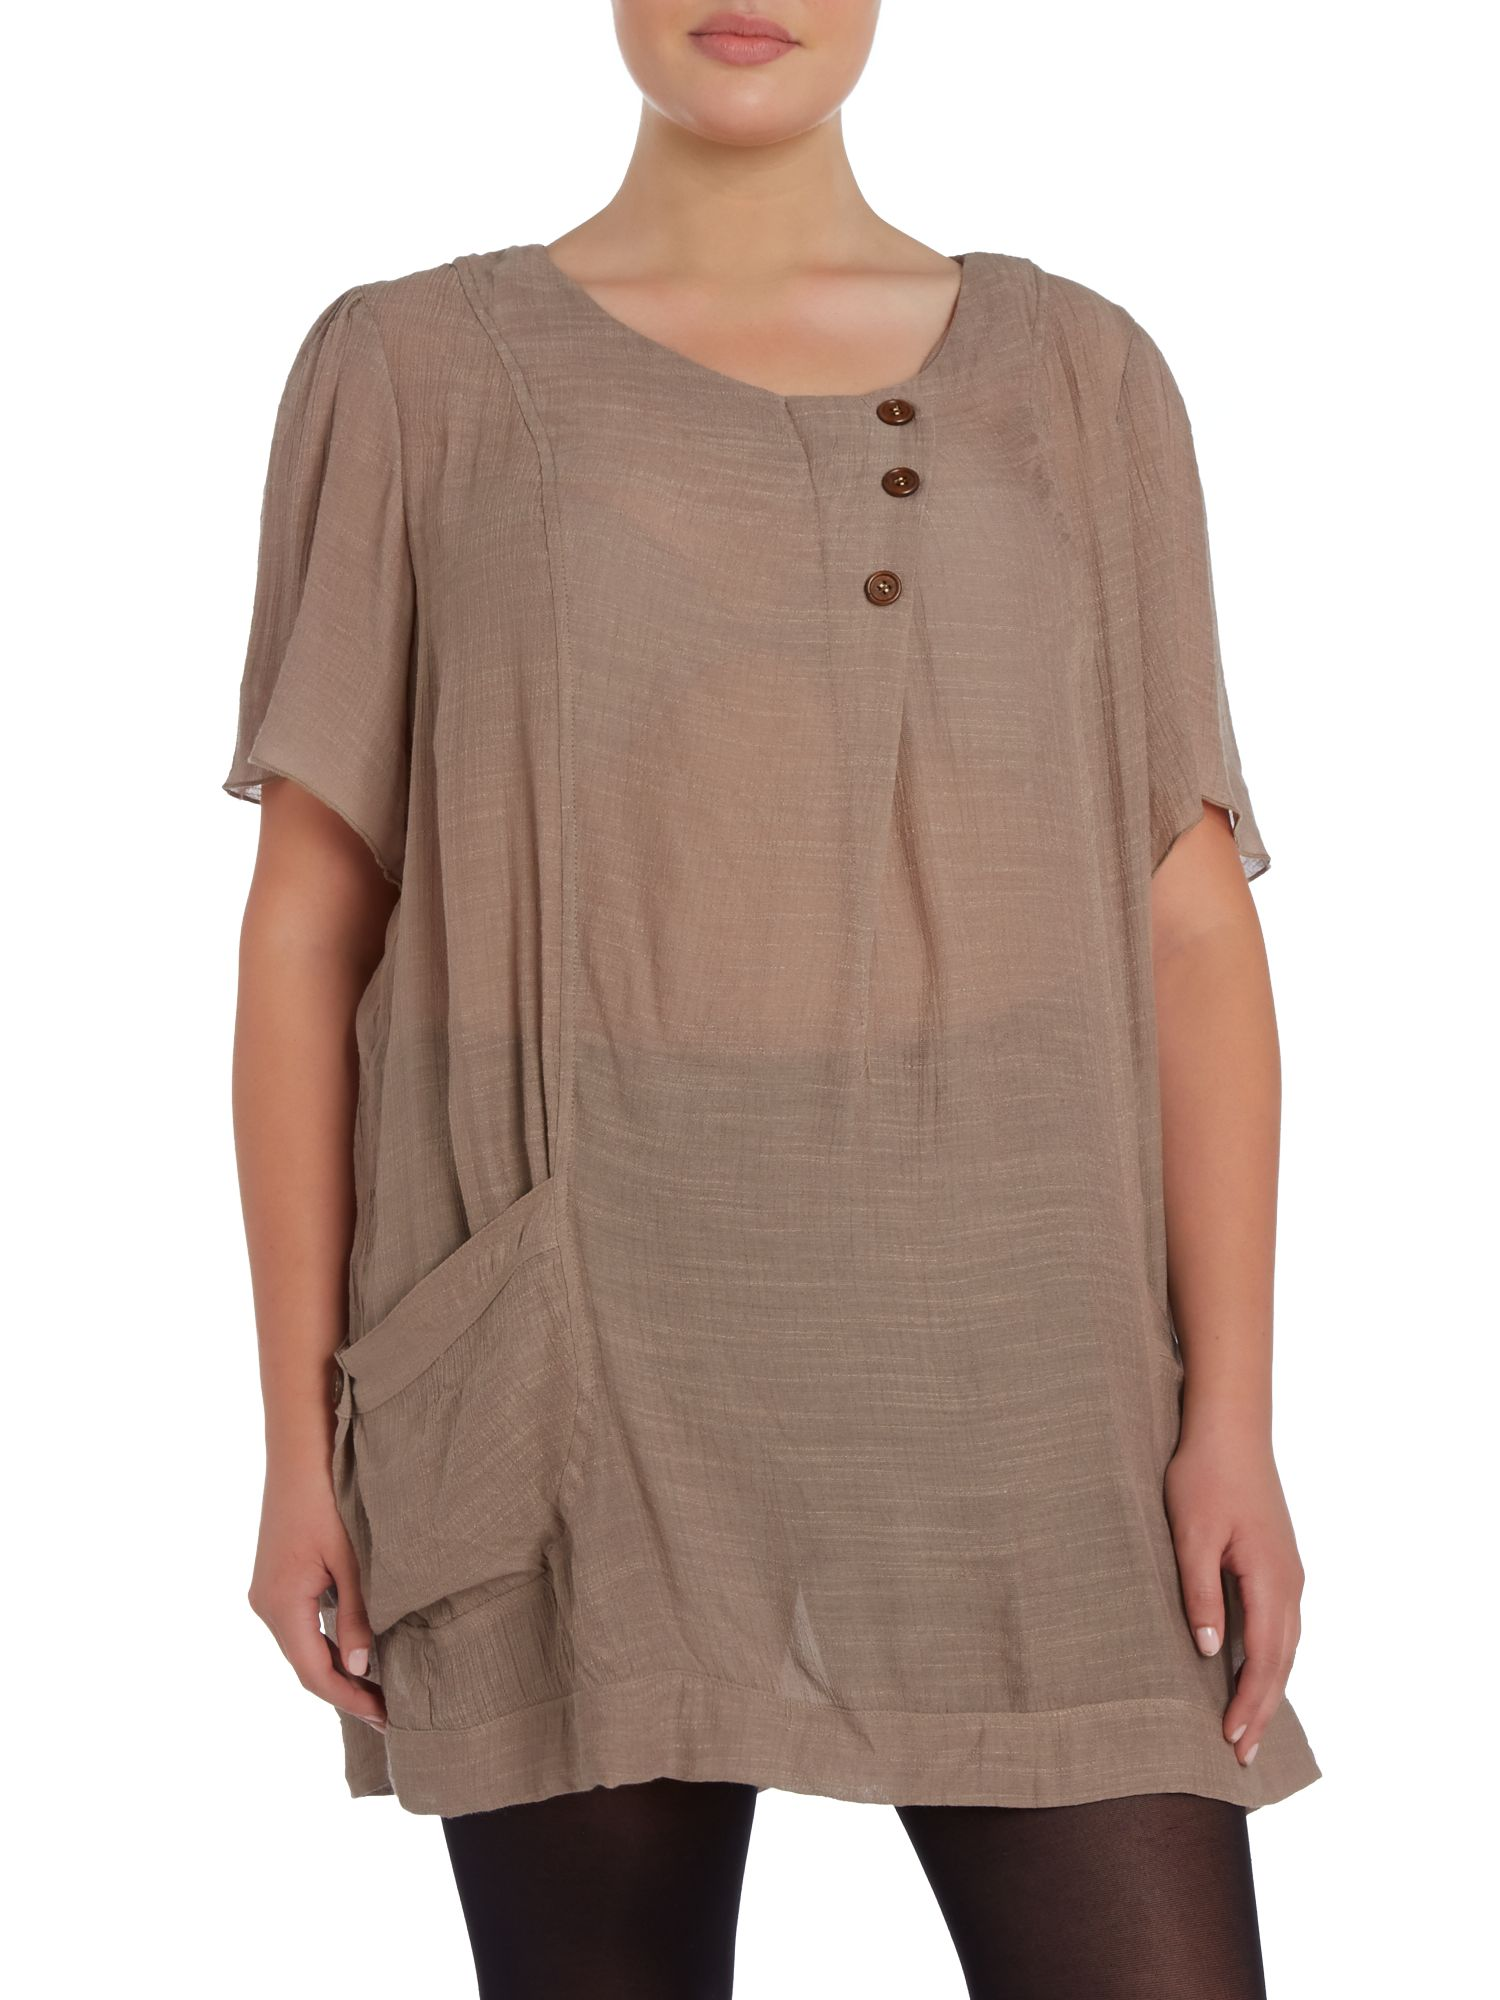 Decorative button tunic top